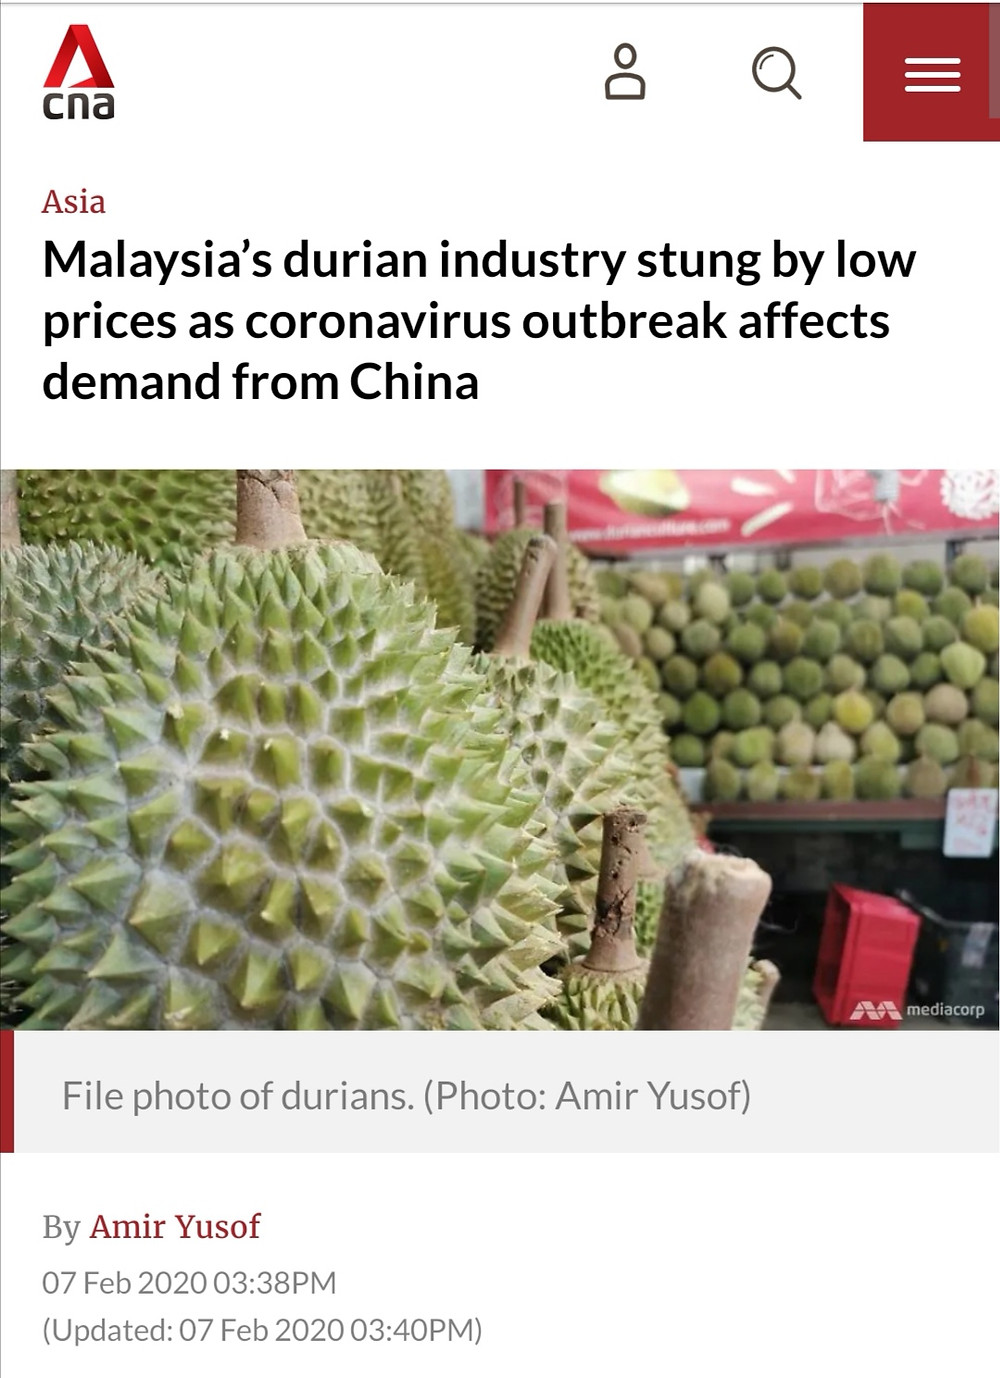 CNA article reporting on durian